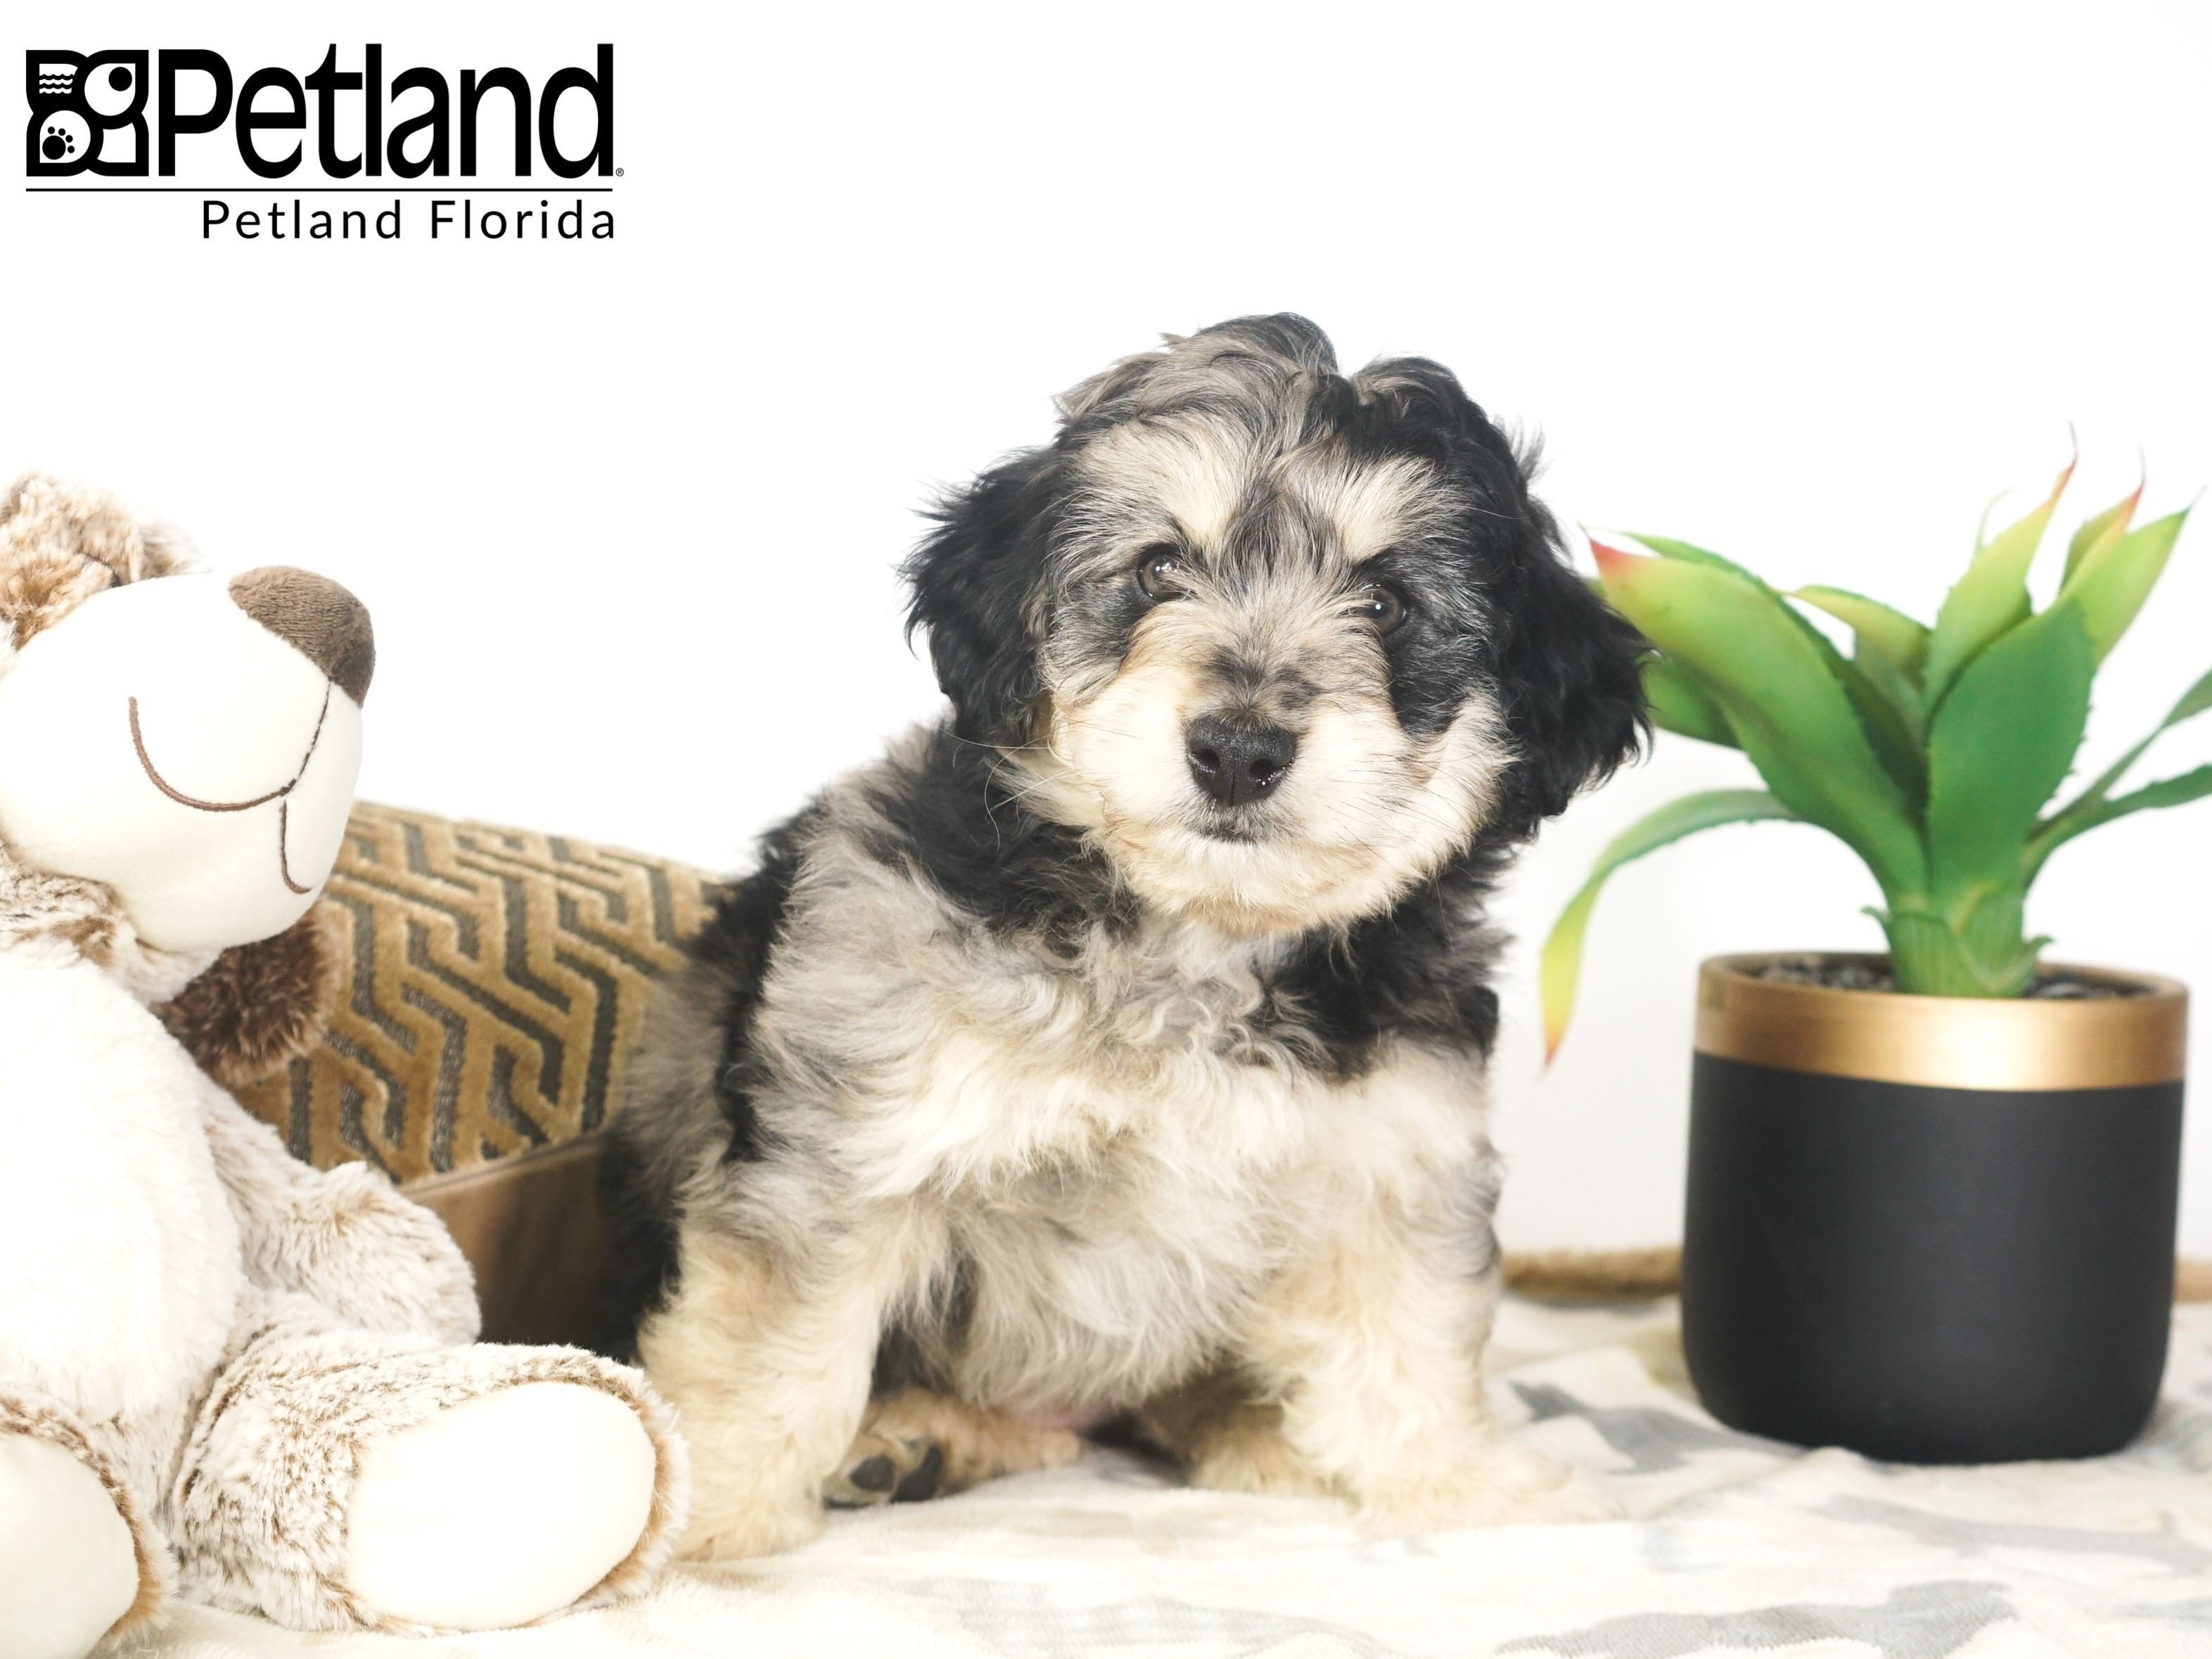 Petland Florida Has Cavapoo Puppies For Sale Check Out All Our Available Puppies Cavapoo Petlandla Cavapoo Puppies Cavapoo Puppies For Sale Puppy Friends